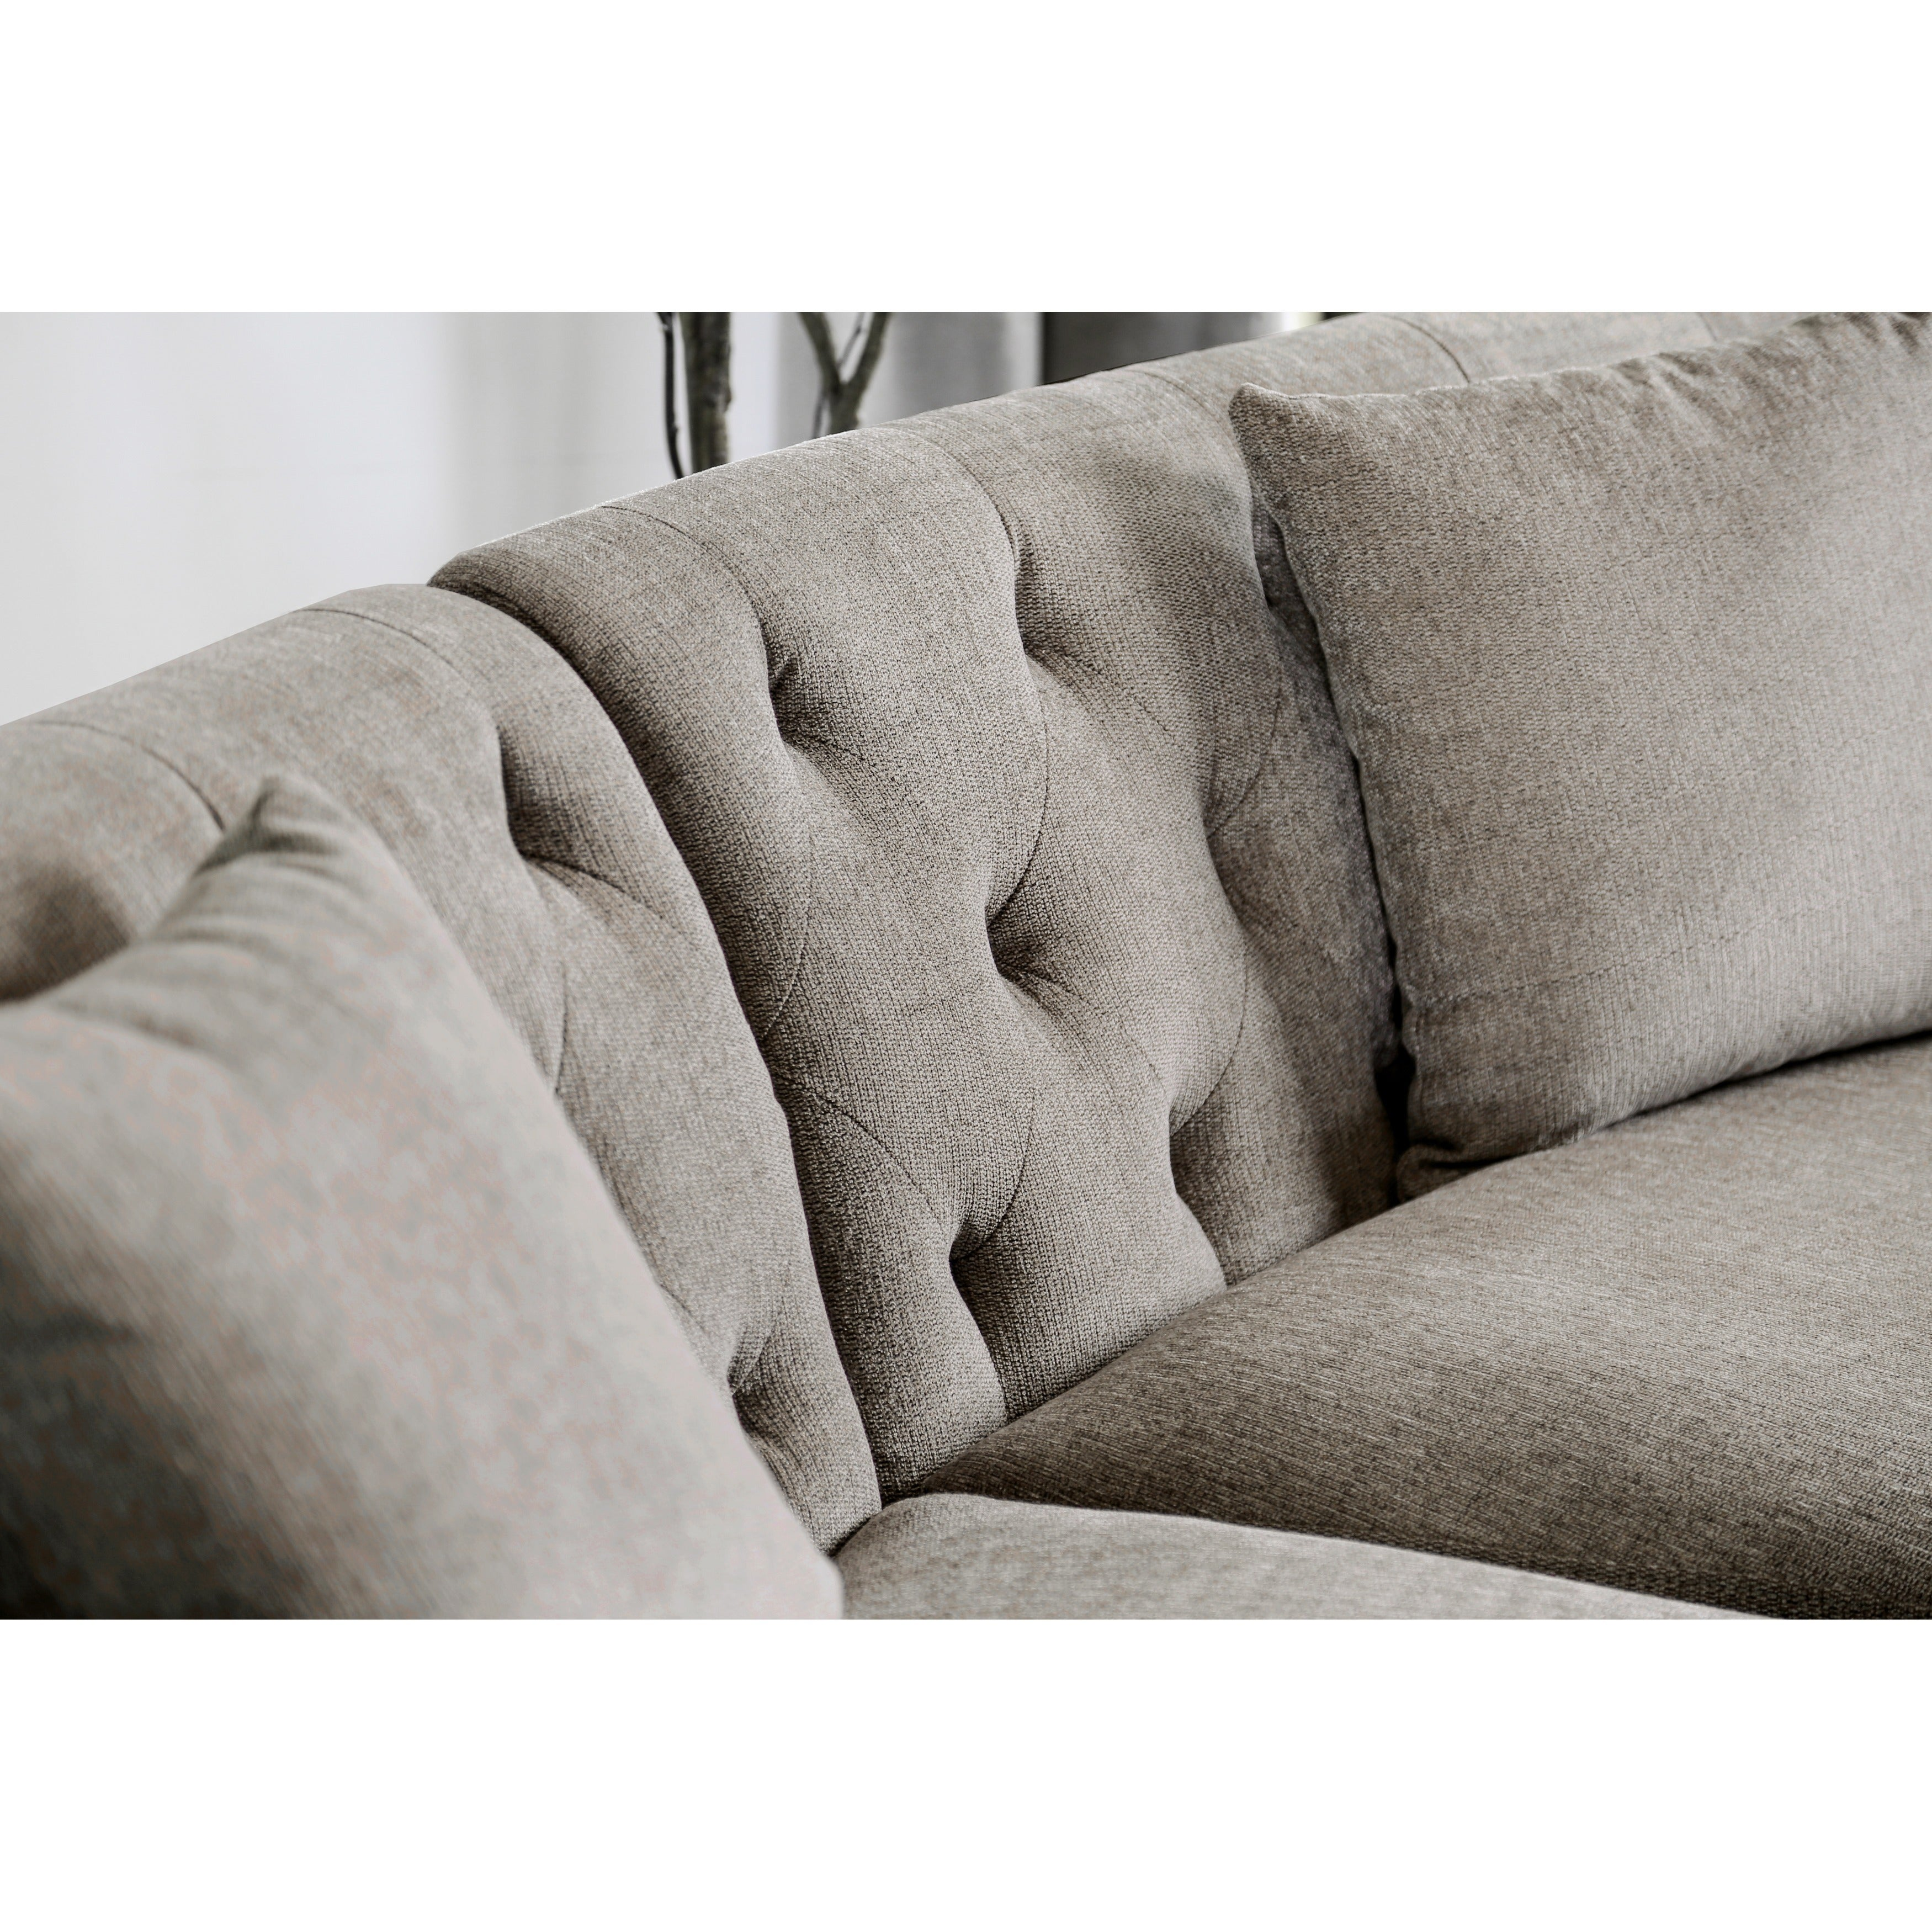 aretha contemporary grey tufted rounded sectional sofa by furniture ofamerica  free shipping today  overstockcom  . aretha contemporary grey tufted rounded sectional sofa by